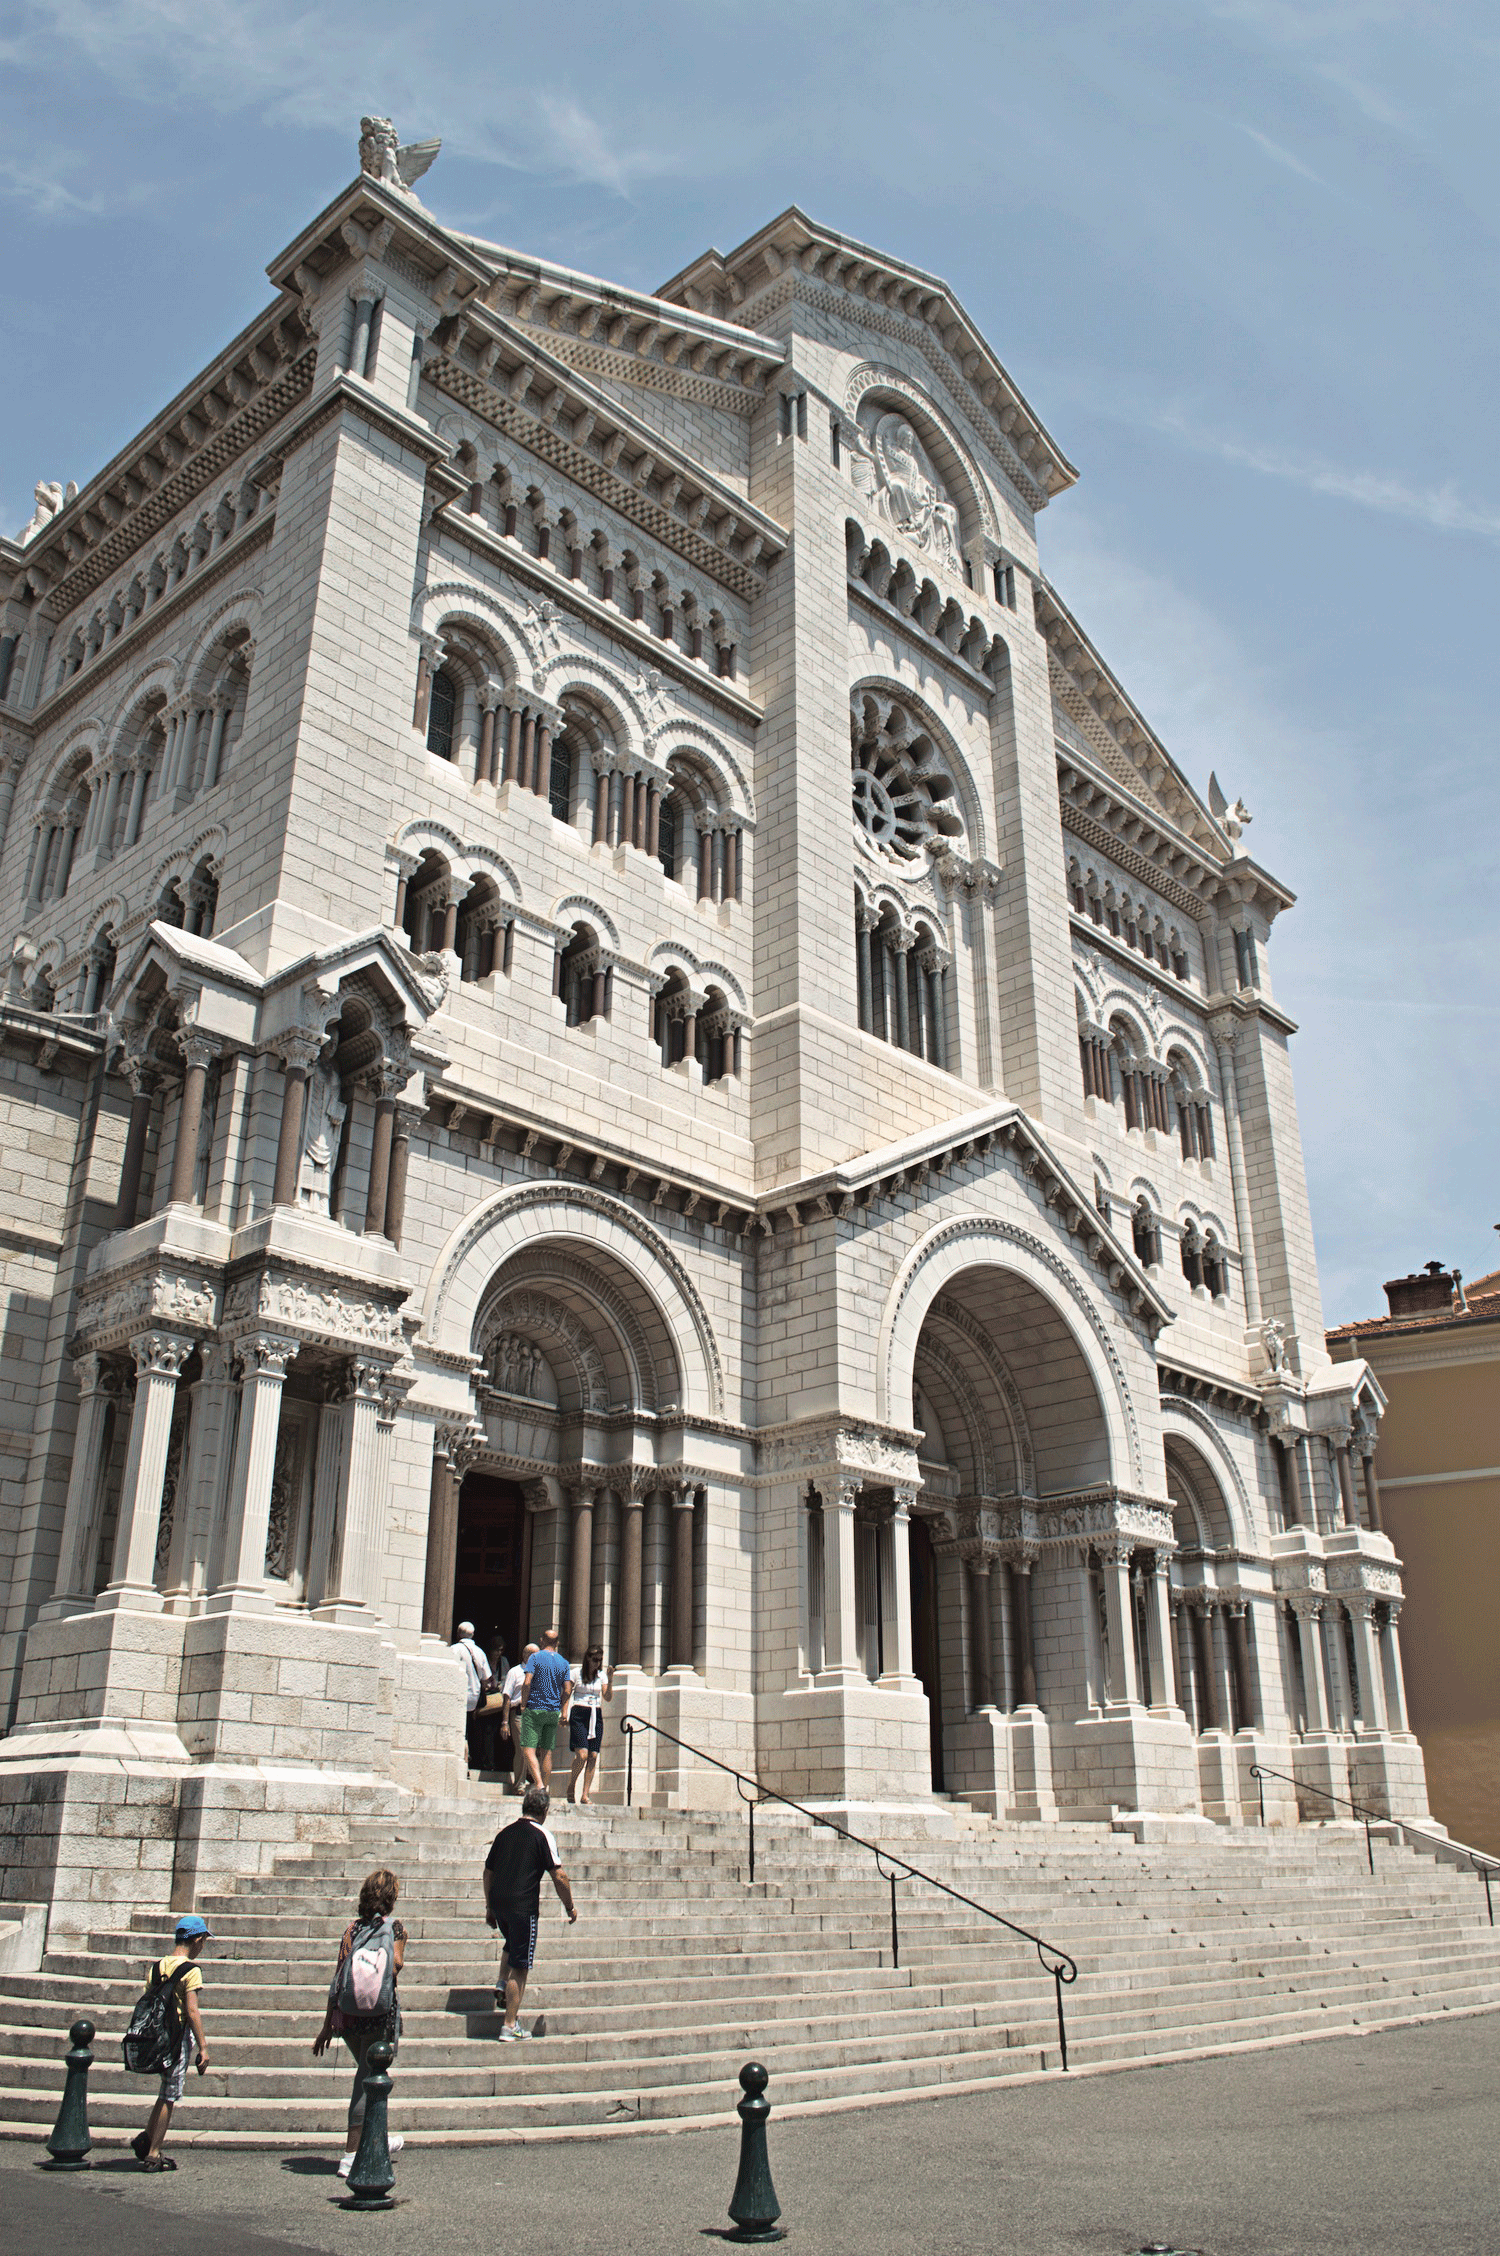 Monaco Cathedral in the day time with tourists walking in